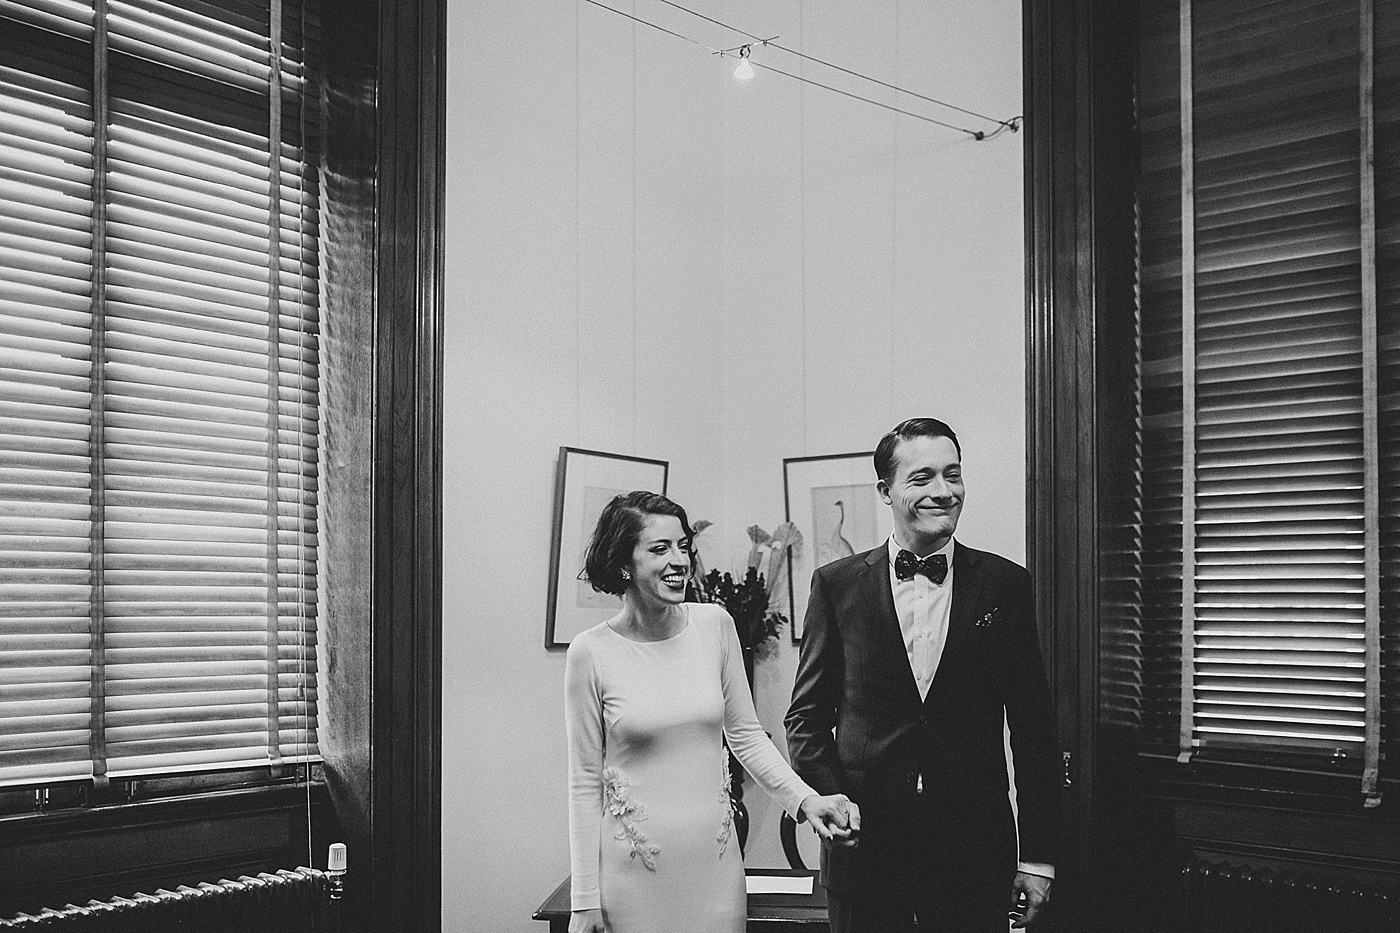 Emma&Morgan_Melbourne-Vintage-Elegant-Fun-CBD-Small-Elopement-Wedding_Melbourne-Wedding-Photography-25